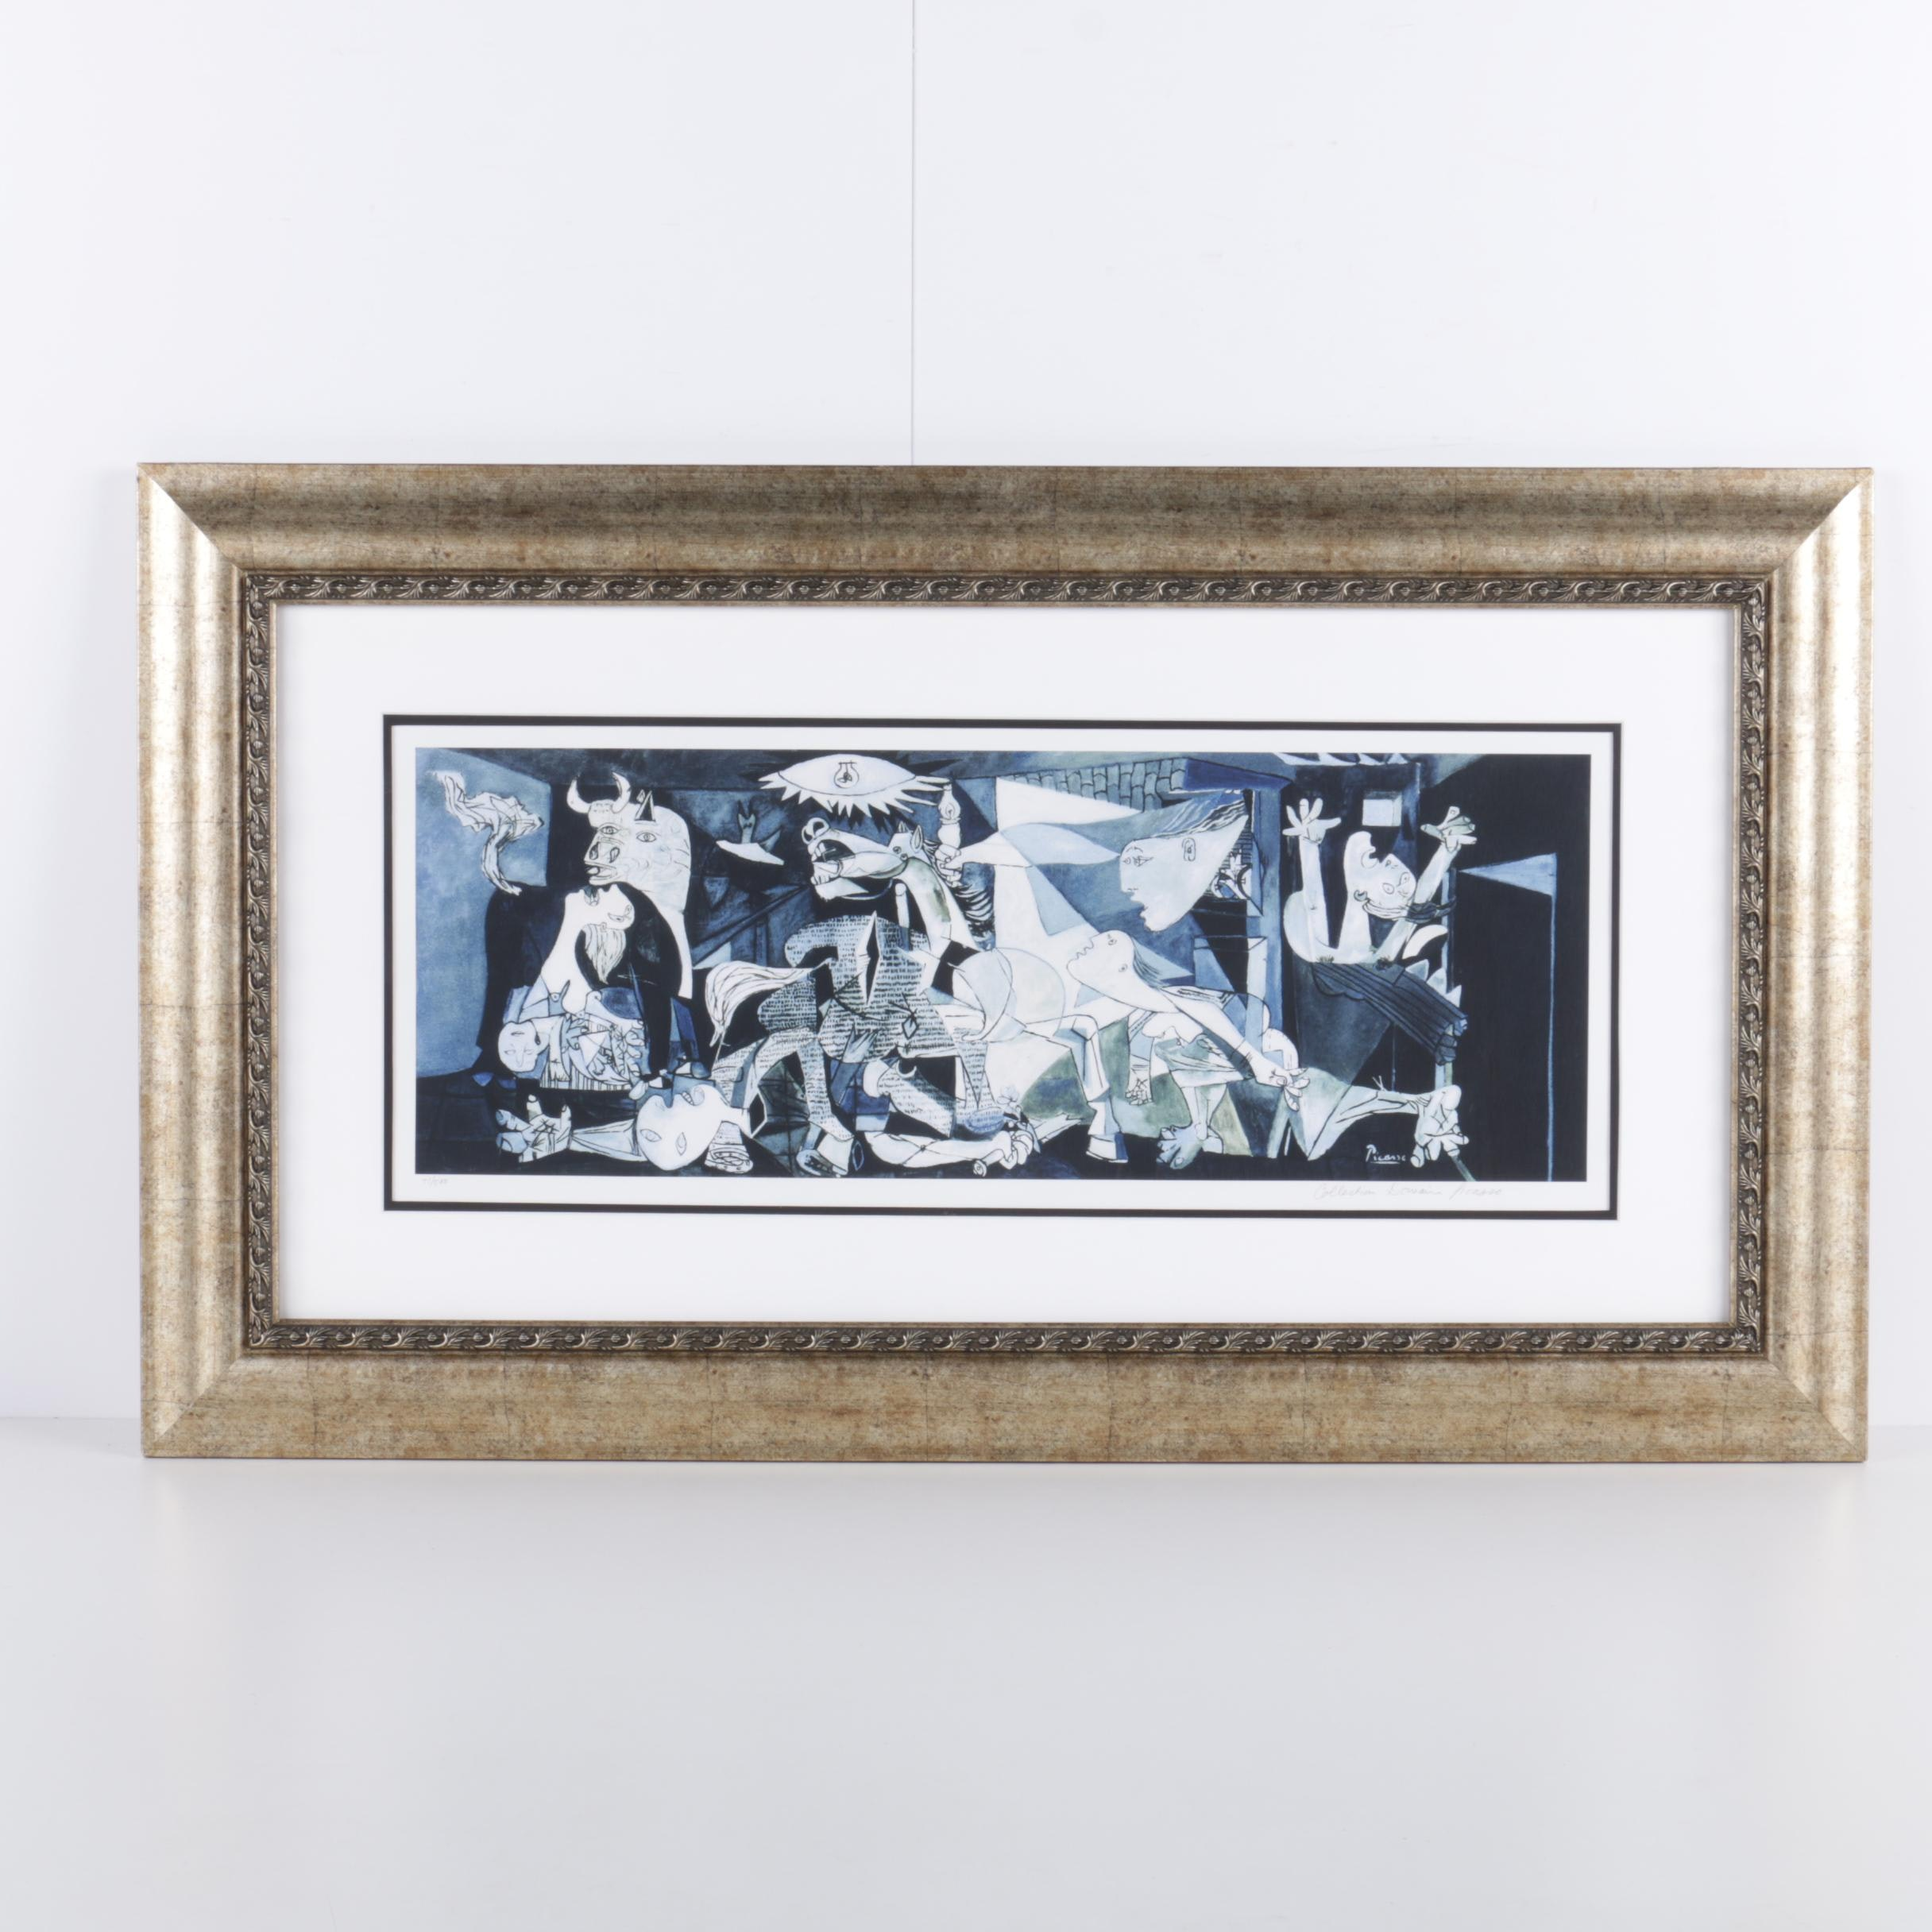 "Limited Edition Giclee on Paper After Pablo Picasso's ""Guernica"""